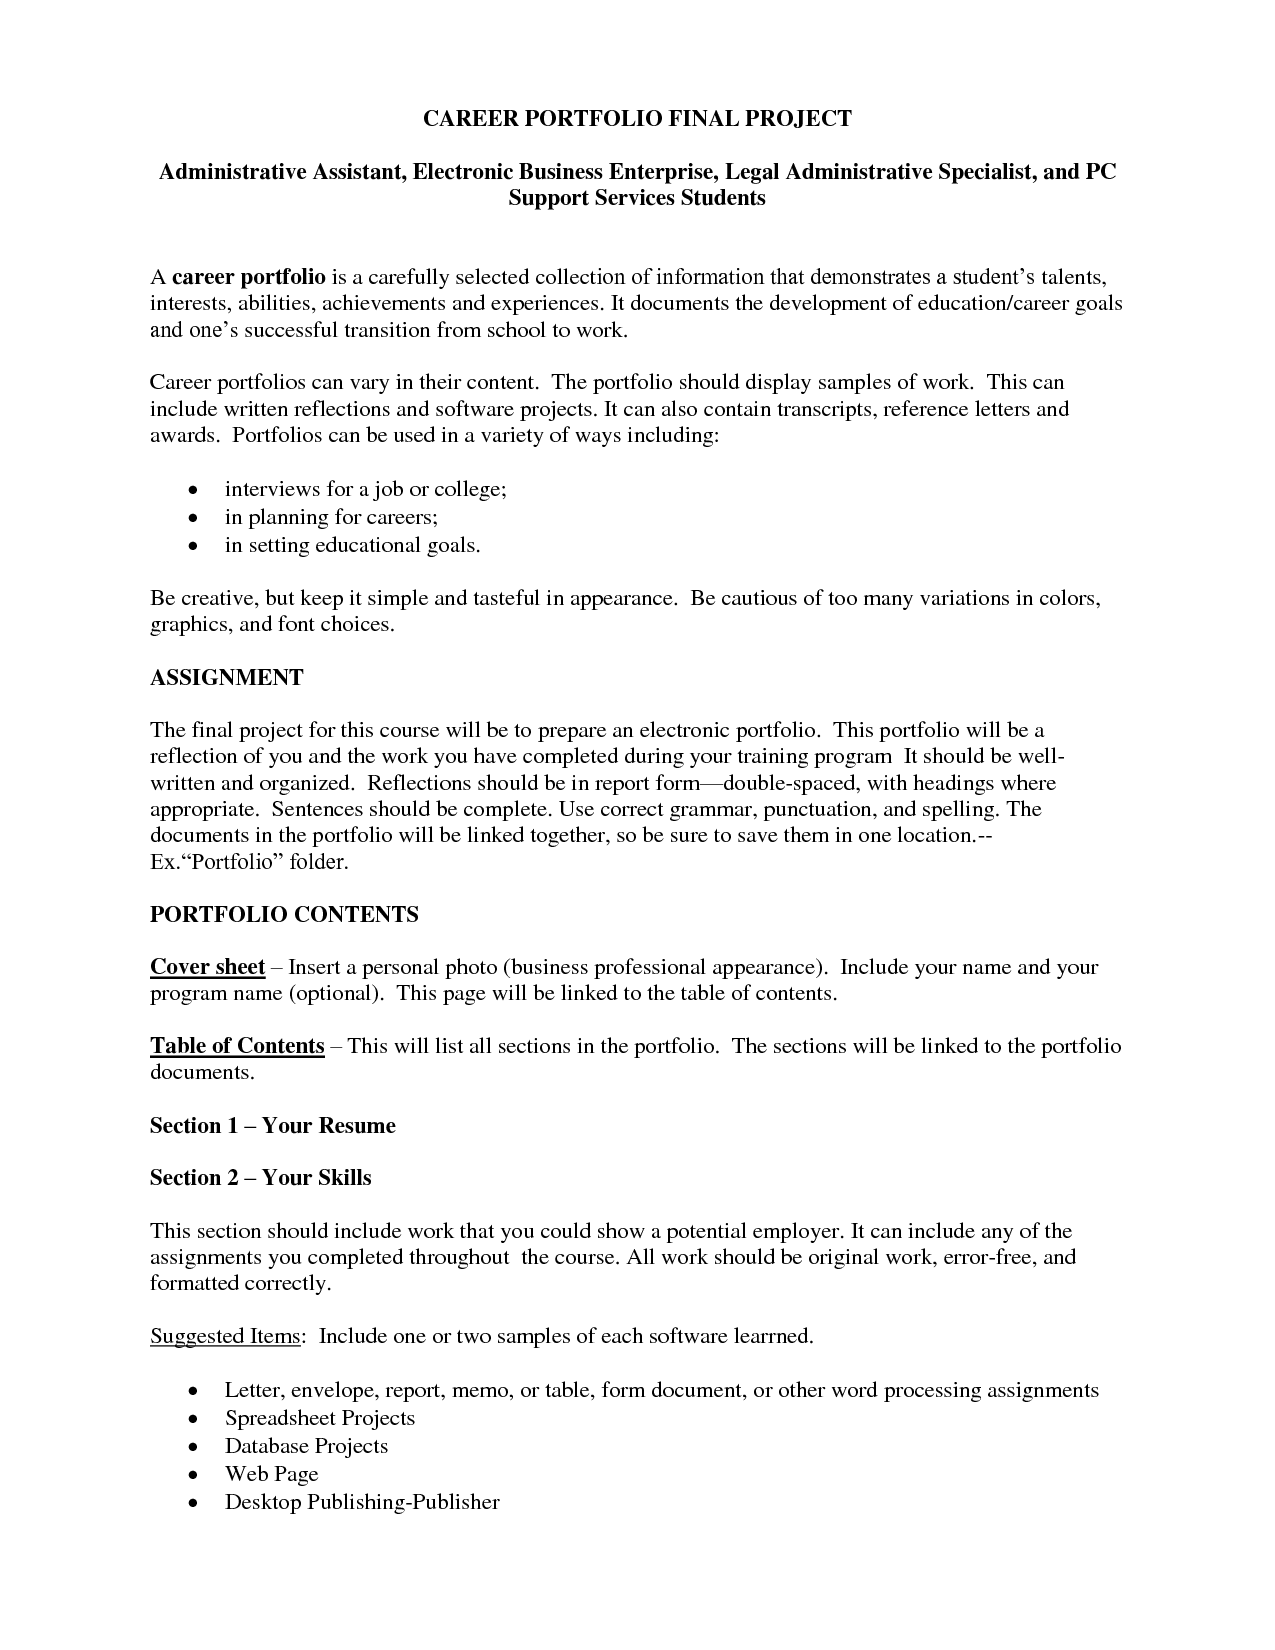 Legal Administrative Resume Samples Http Ersume Com Legal